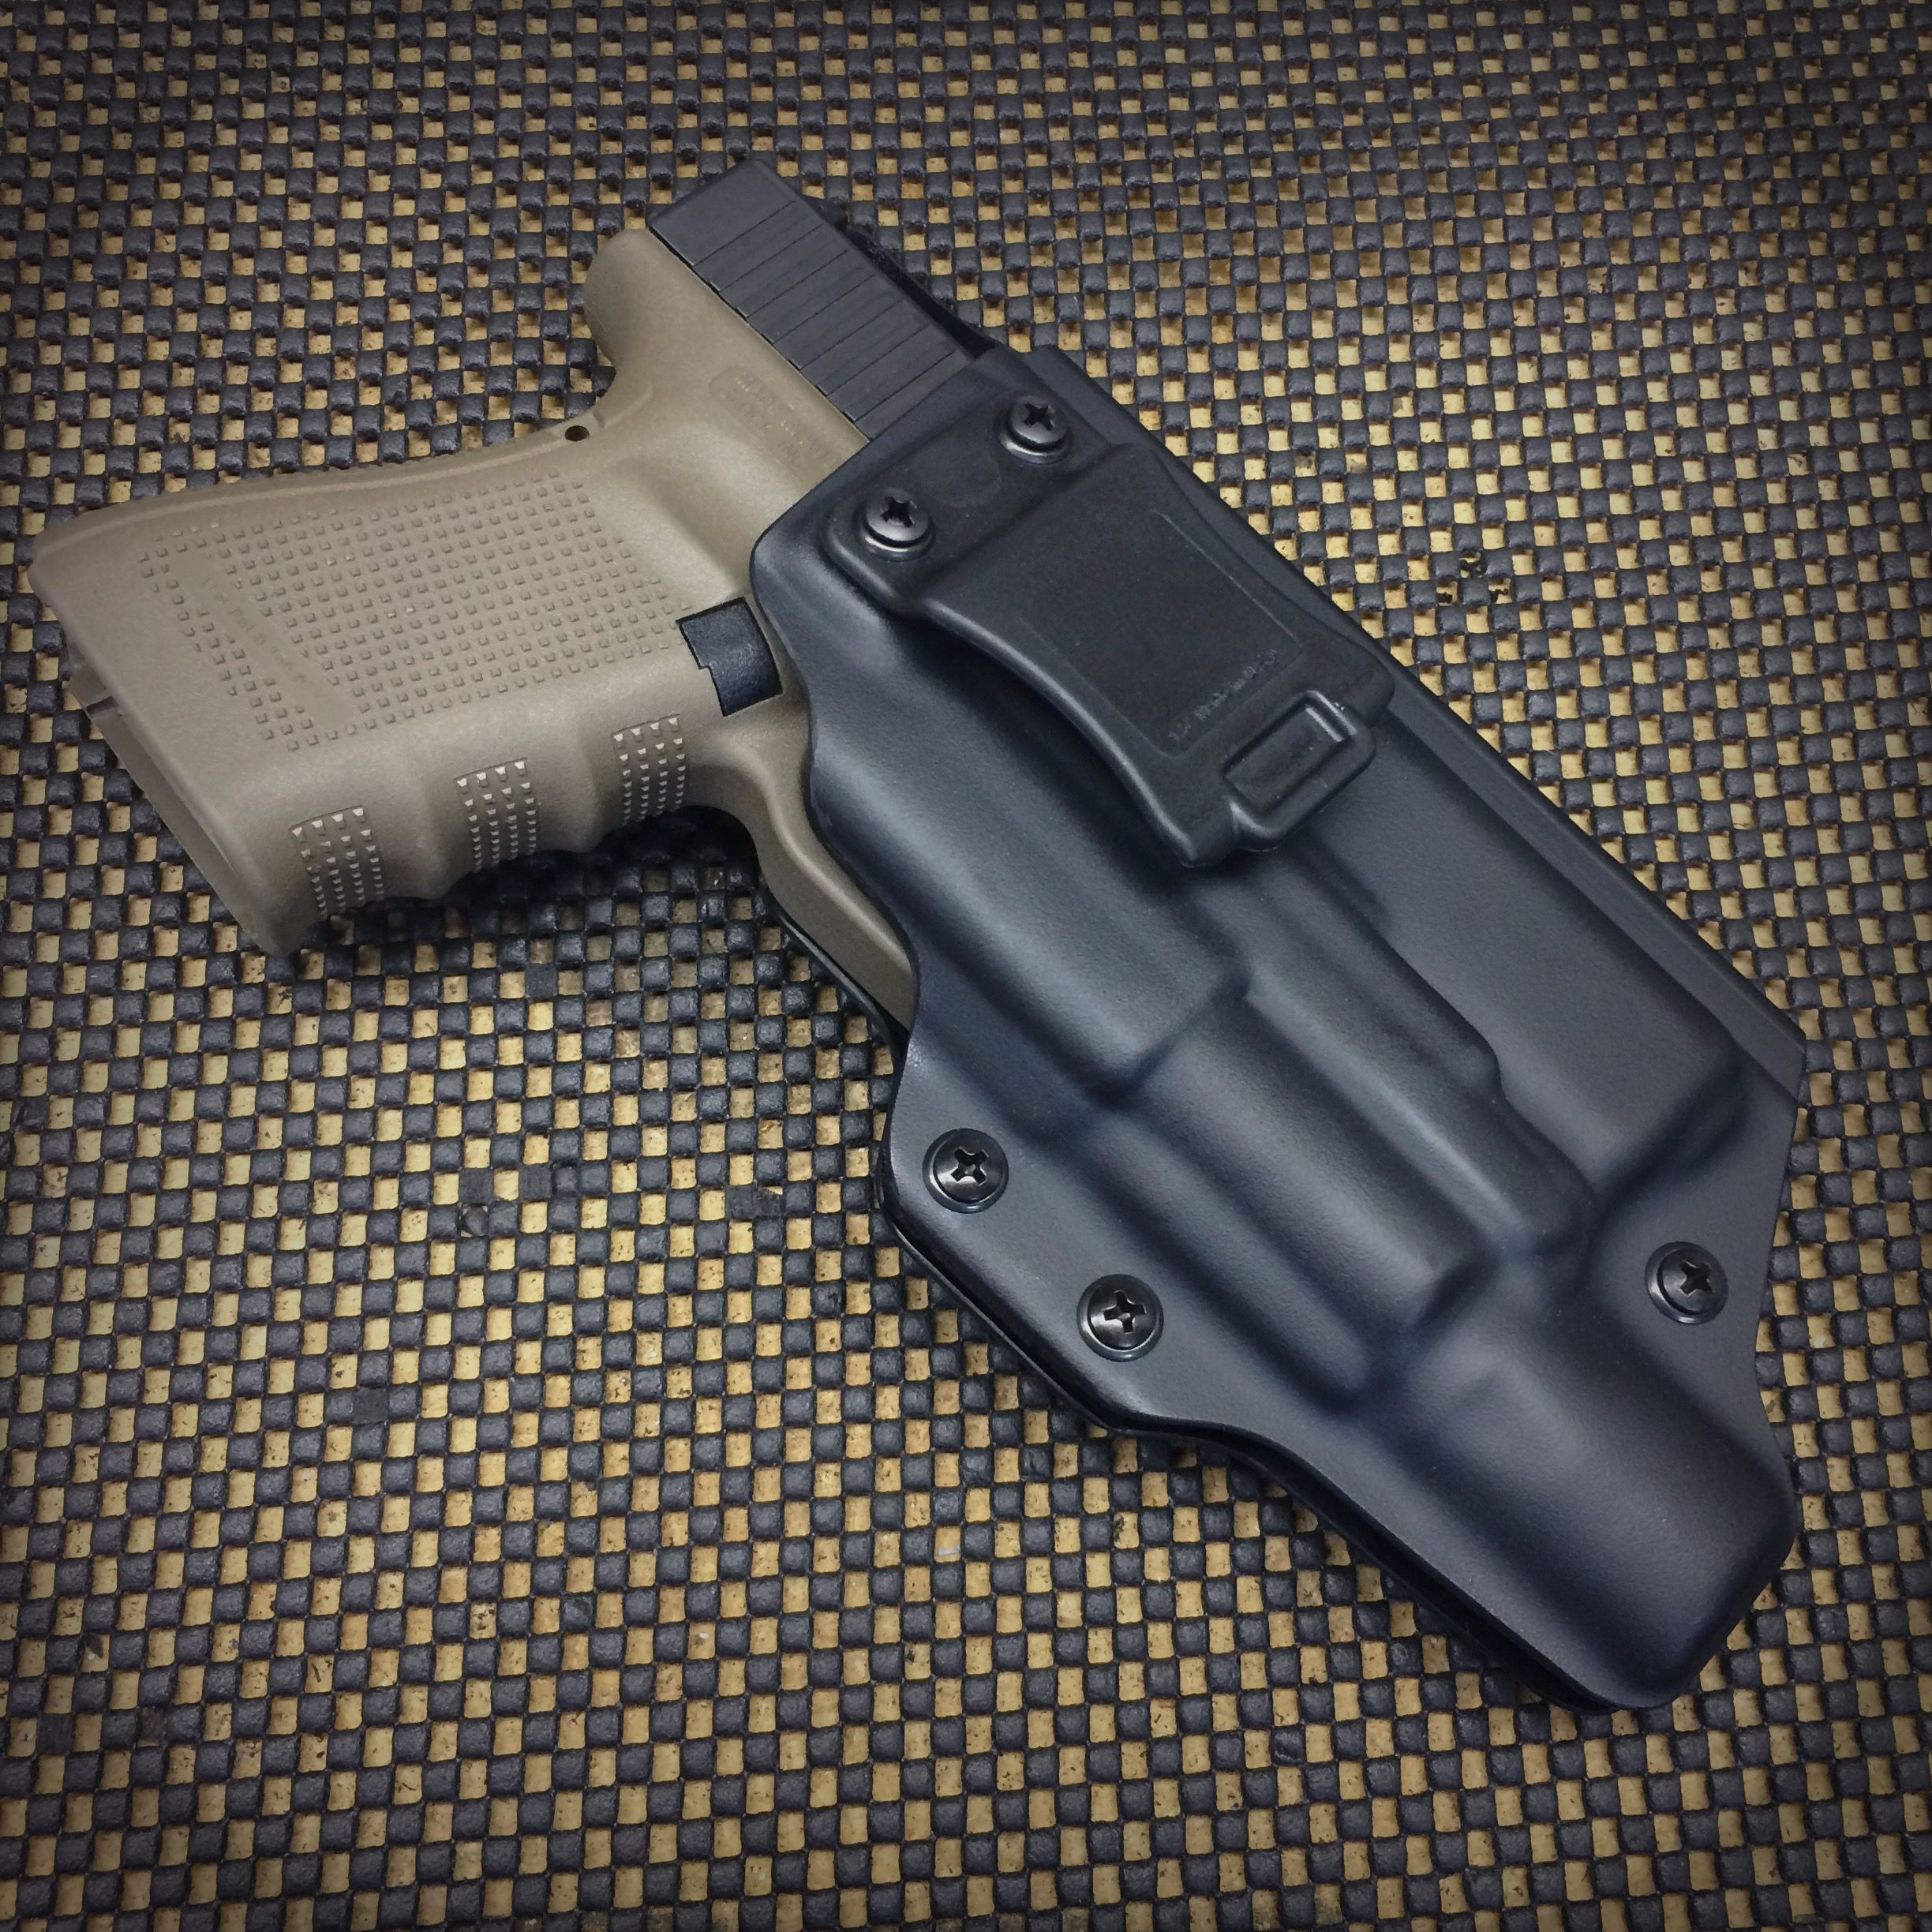 Wraith Holster for a Glock 19 with the Surefire X300